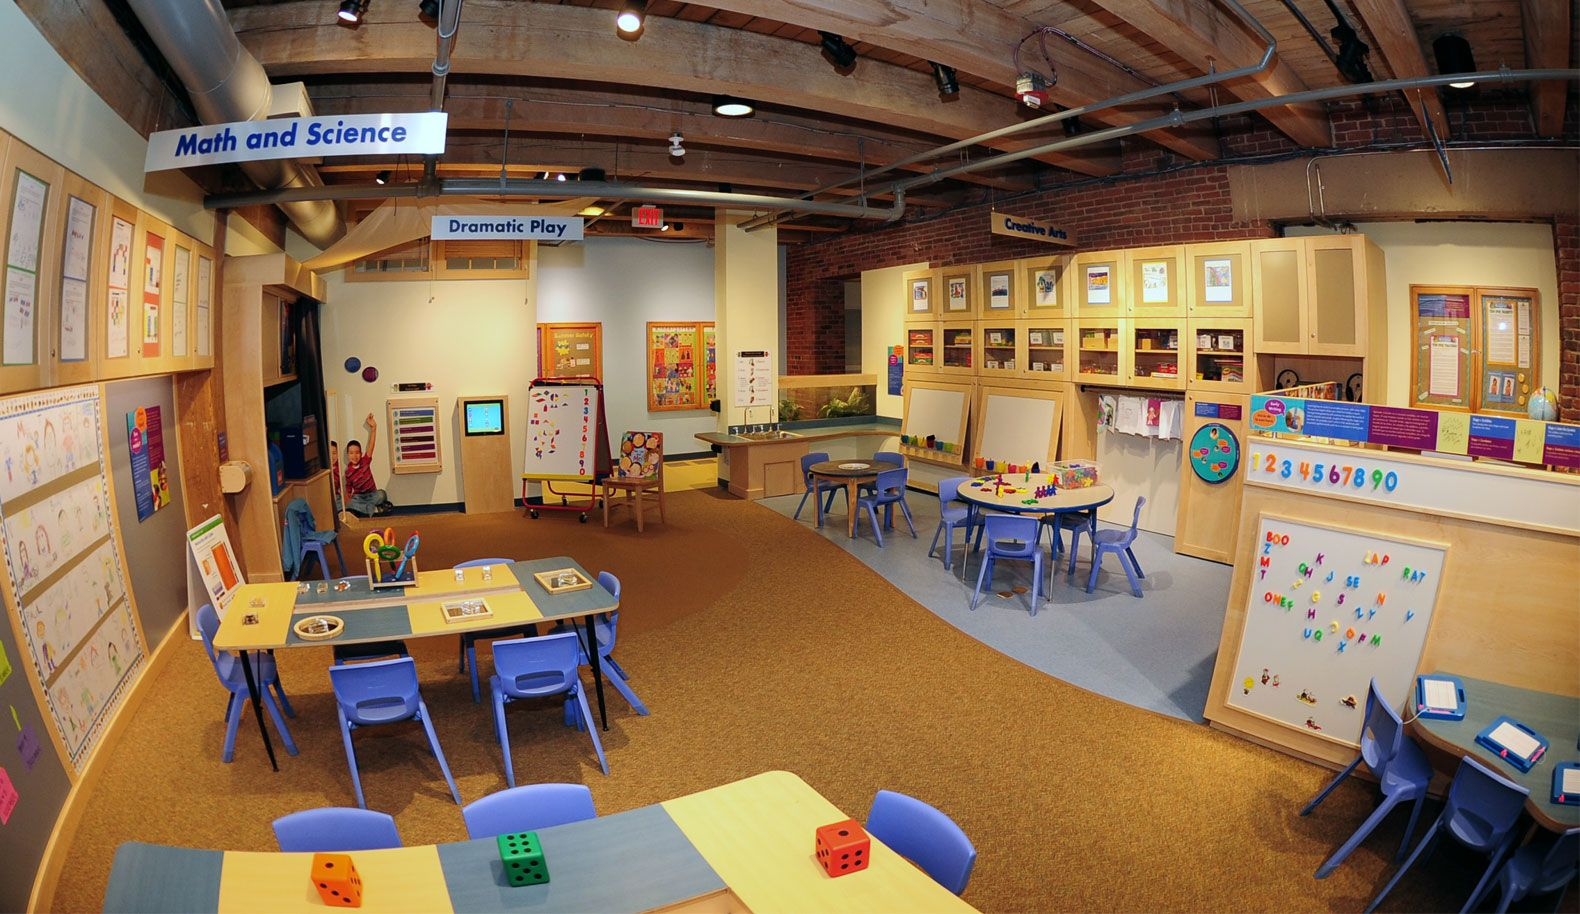 The kindergarten exhibit at the Boston Children's Museum features typical stations you'd find in a kindergarten classroom.